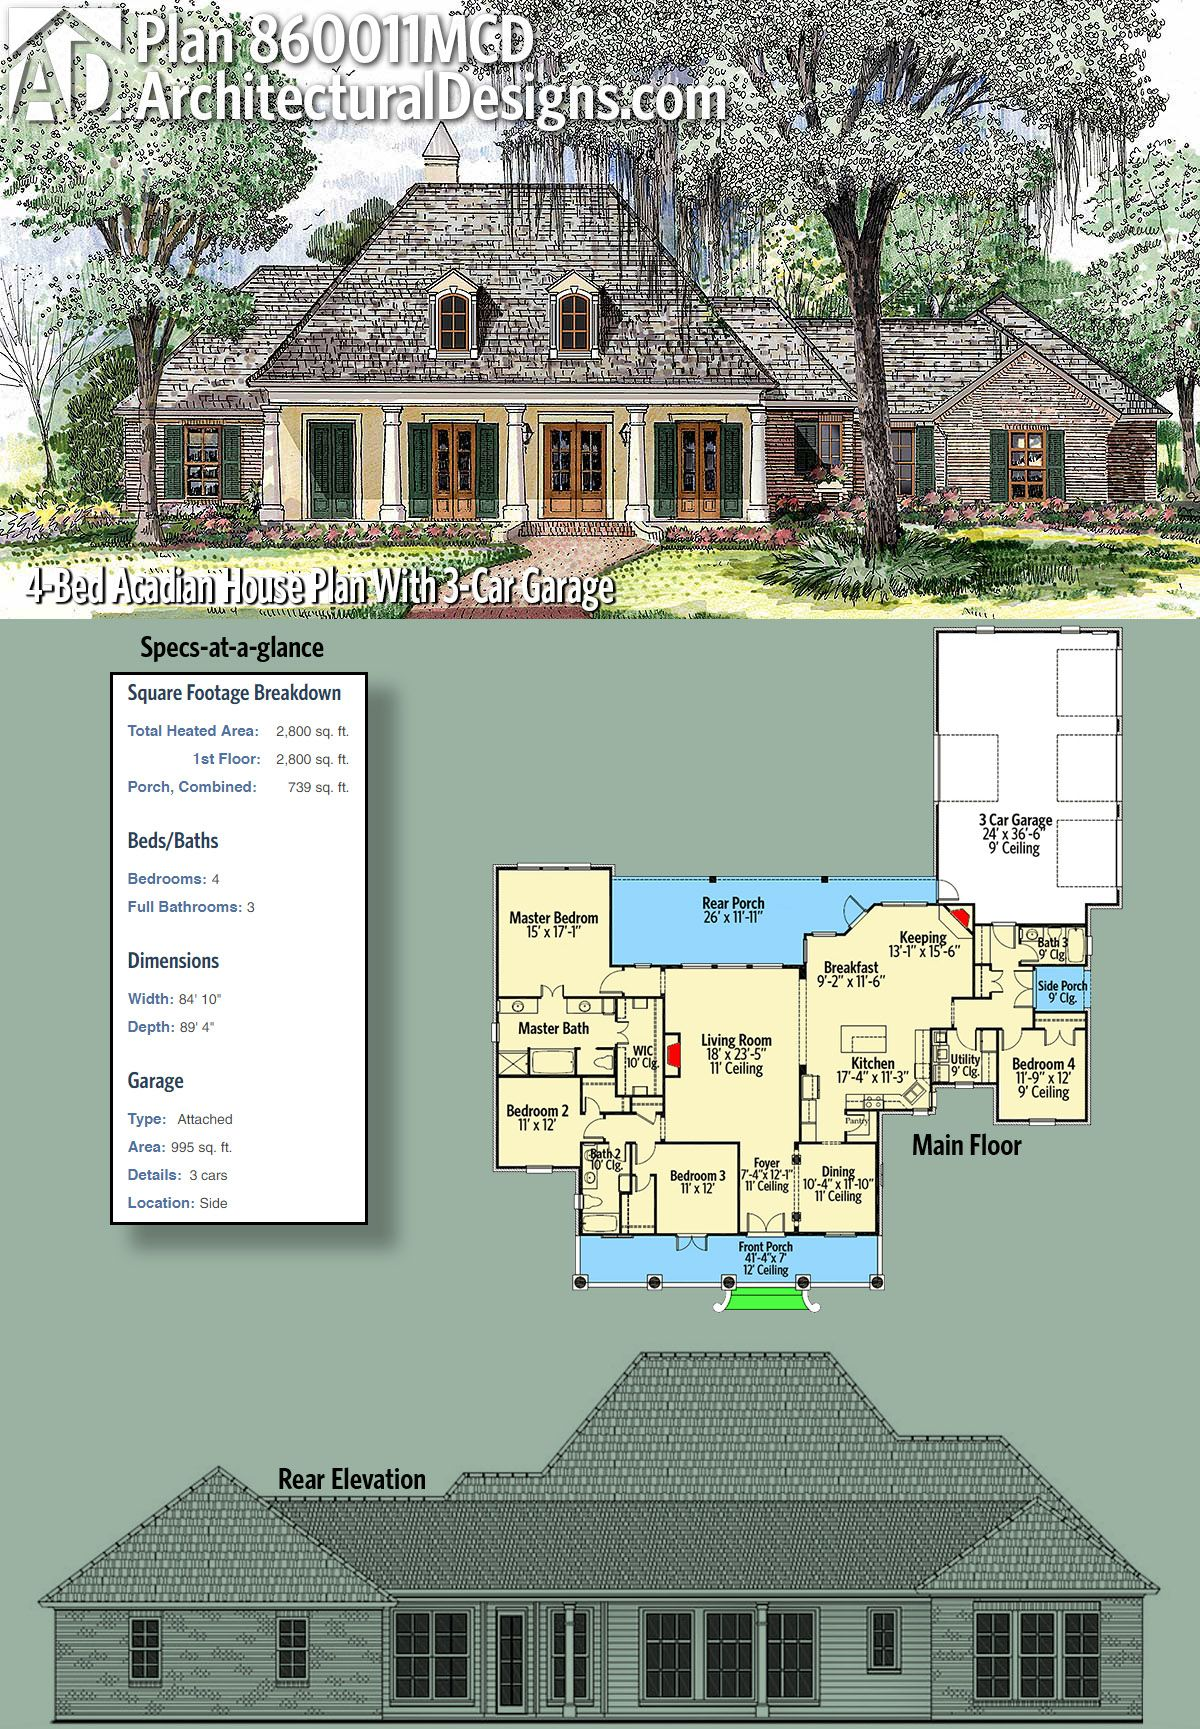 Plan 860011mcd 4 Bed Acadian House Plan With 3 Car Garage Acadian House Plans House Plans Ranch Style House Plans